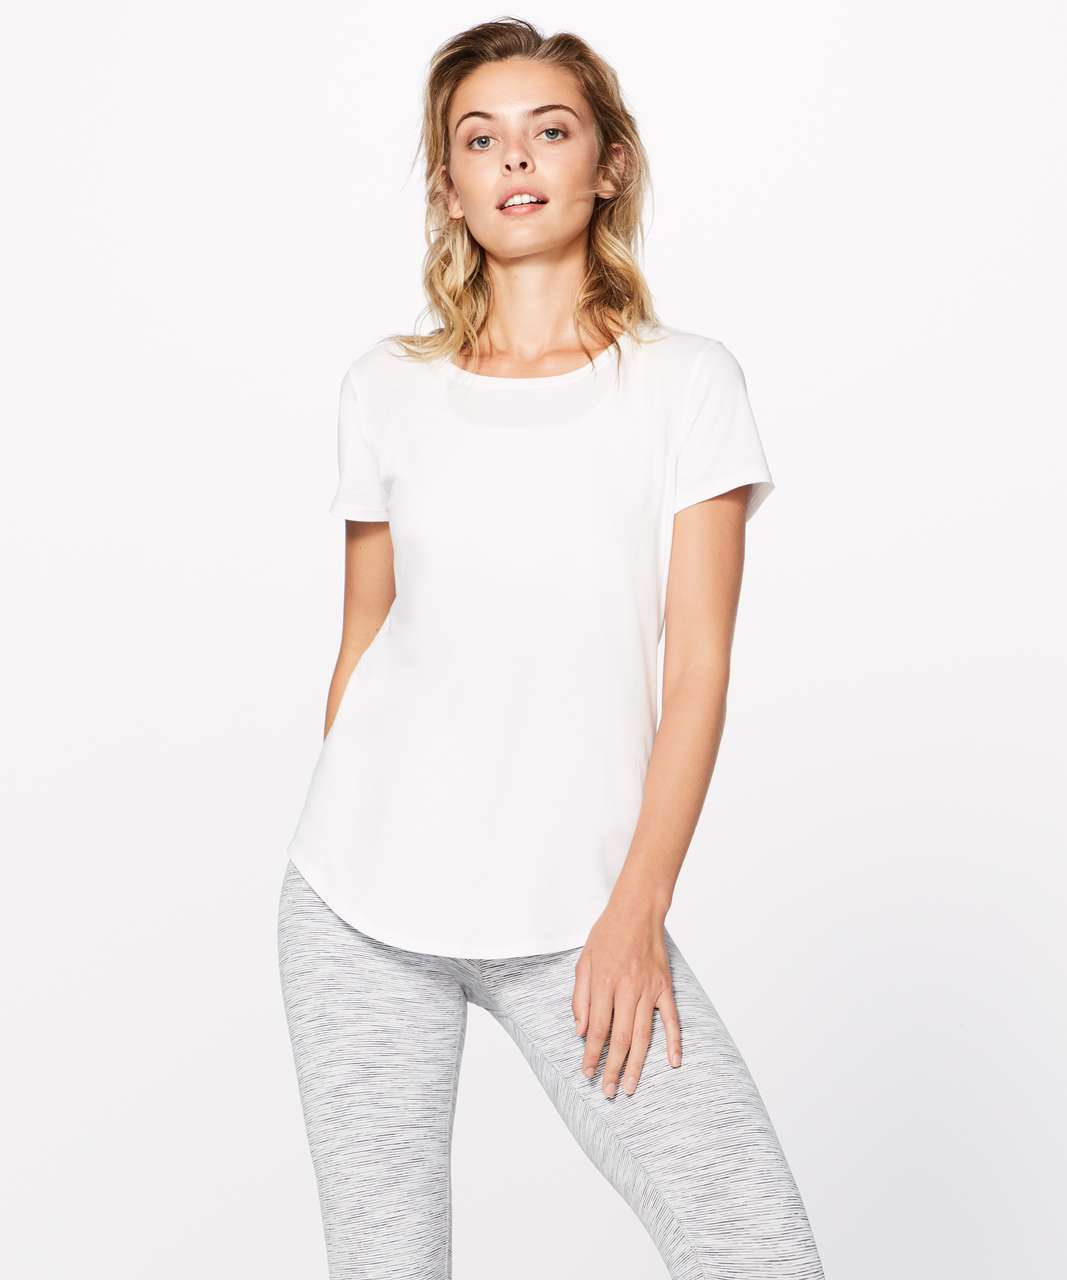 Lululemon Love Crew III - White (First Release)